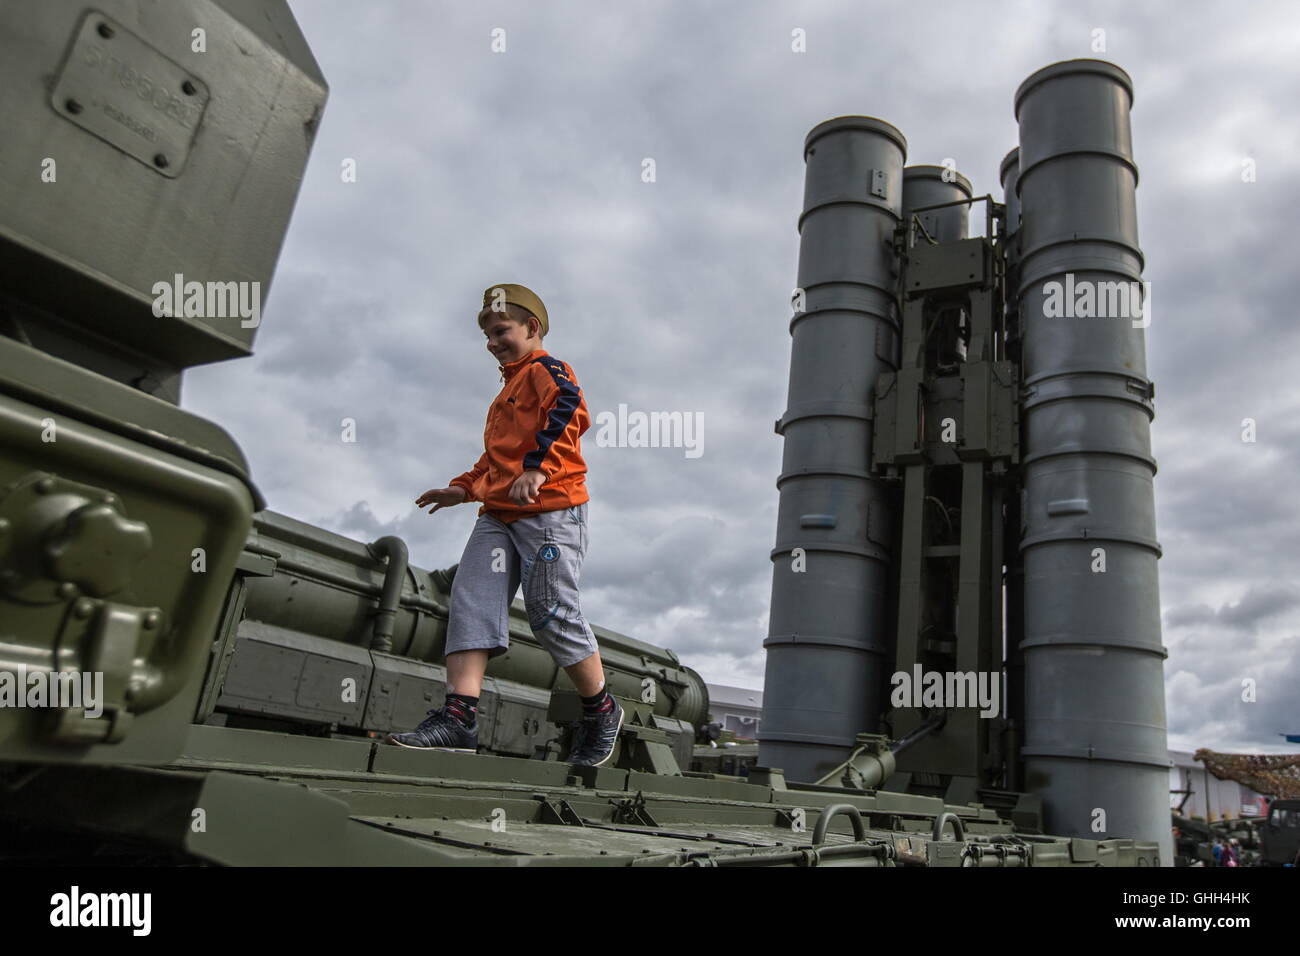 S 300 missile systems vs patriot - Moscow Region Russia September 9 2016 The S 300 Surface To Air Missile System Displayed At A Demonstration Of Military Machinery And Equipment At The